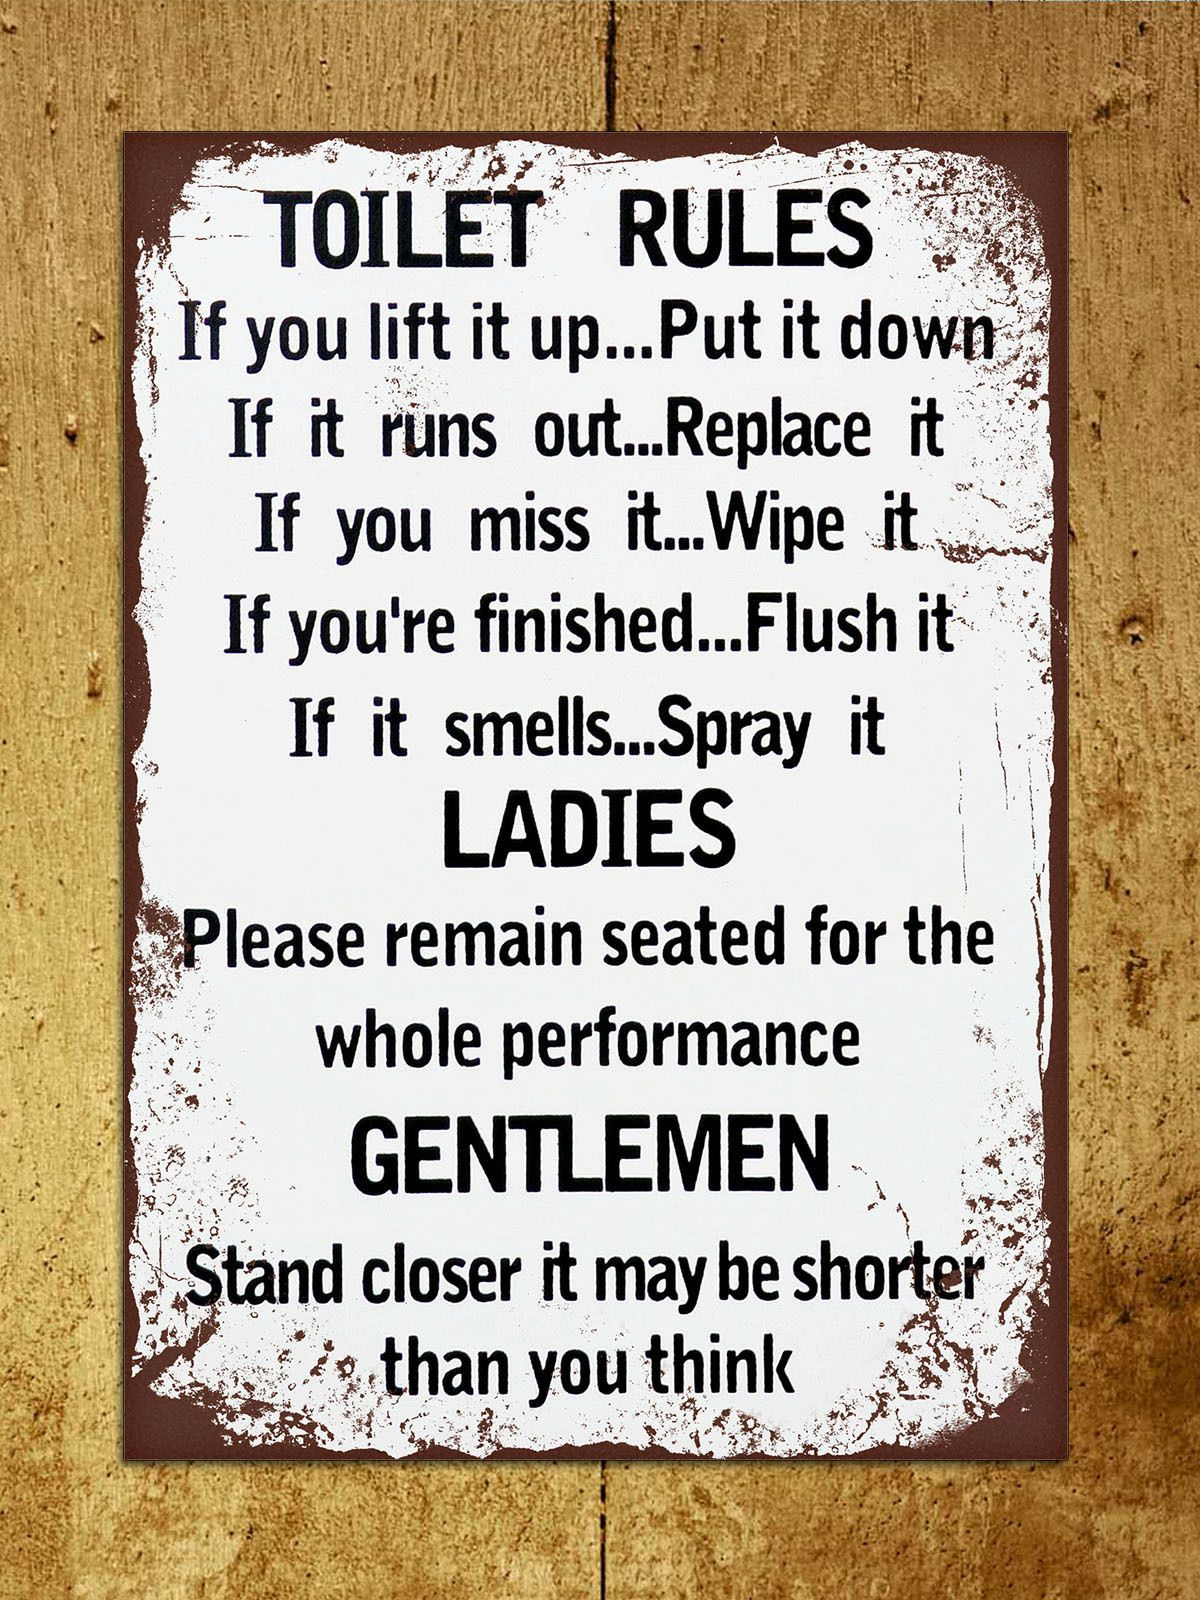 Details About Vintage Retro Style Toilet Rules Funny Bathroom Metal Sign Tin Wall Door Plaque Bathroom Humor Toilet Rules Retro Home Decor